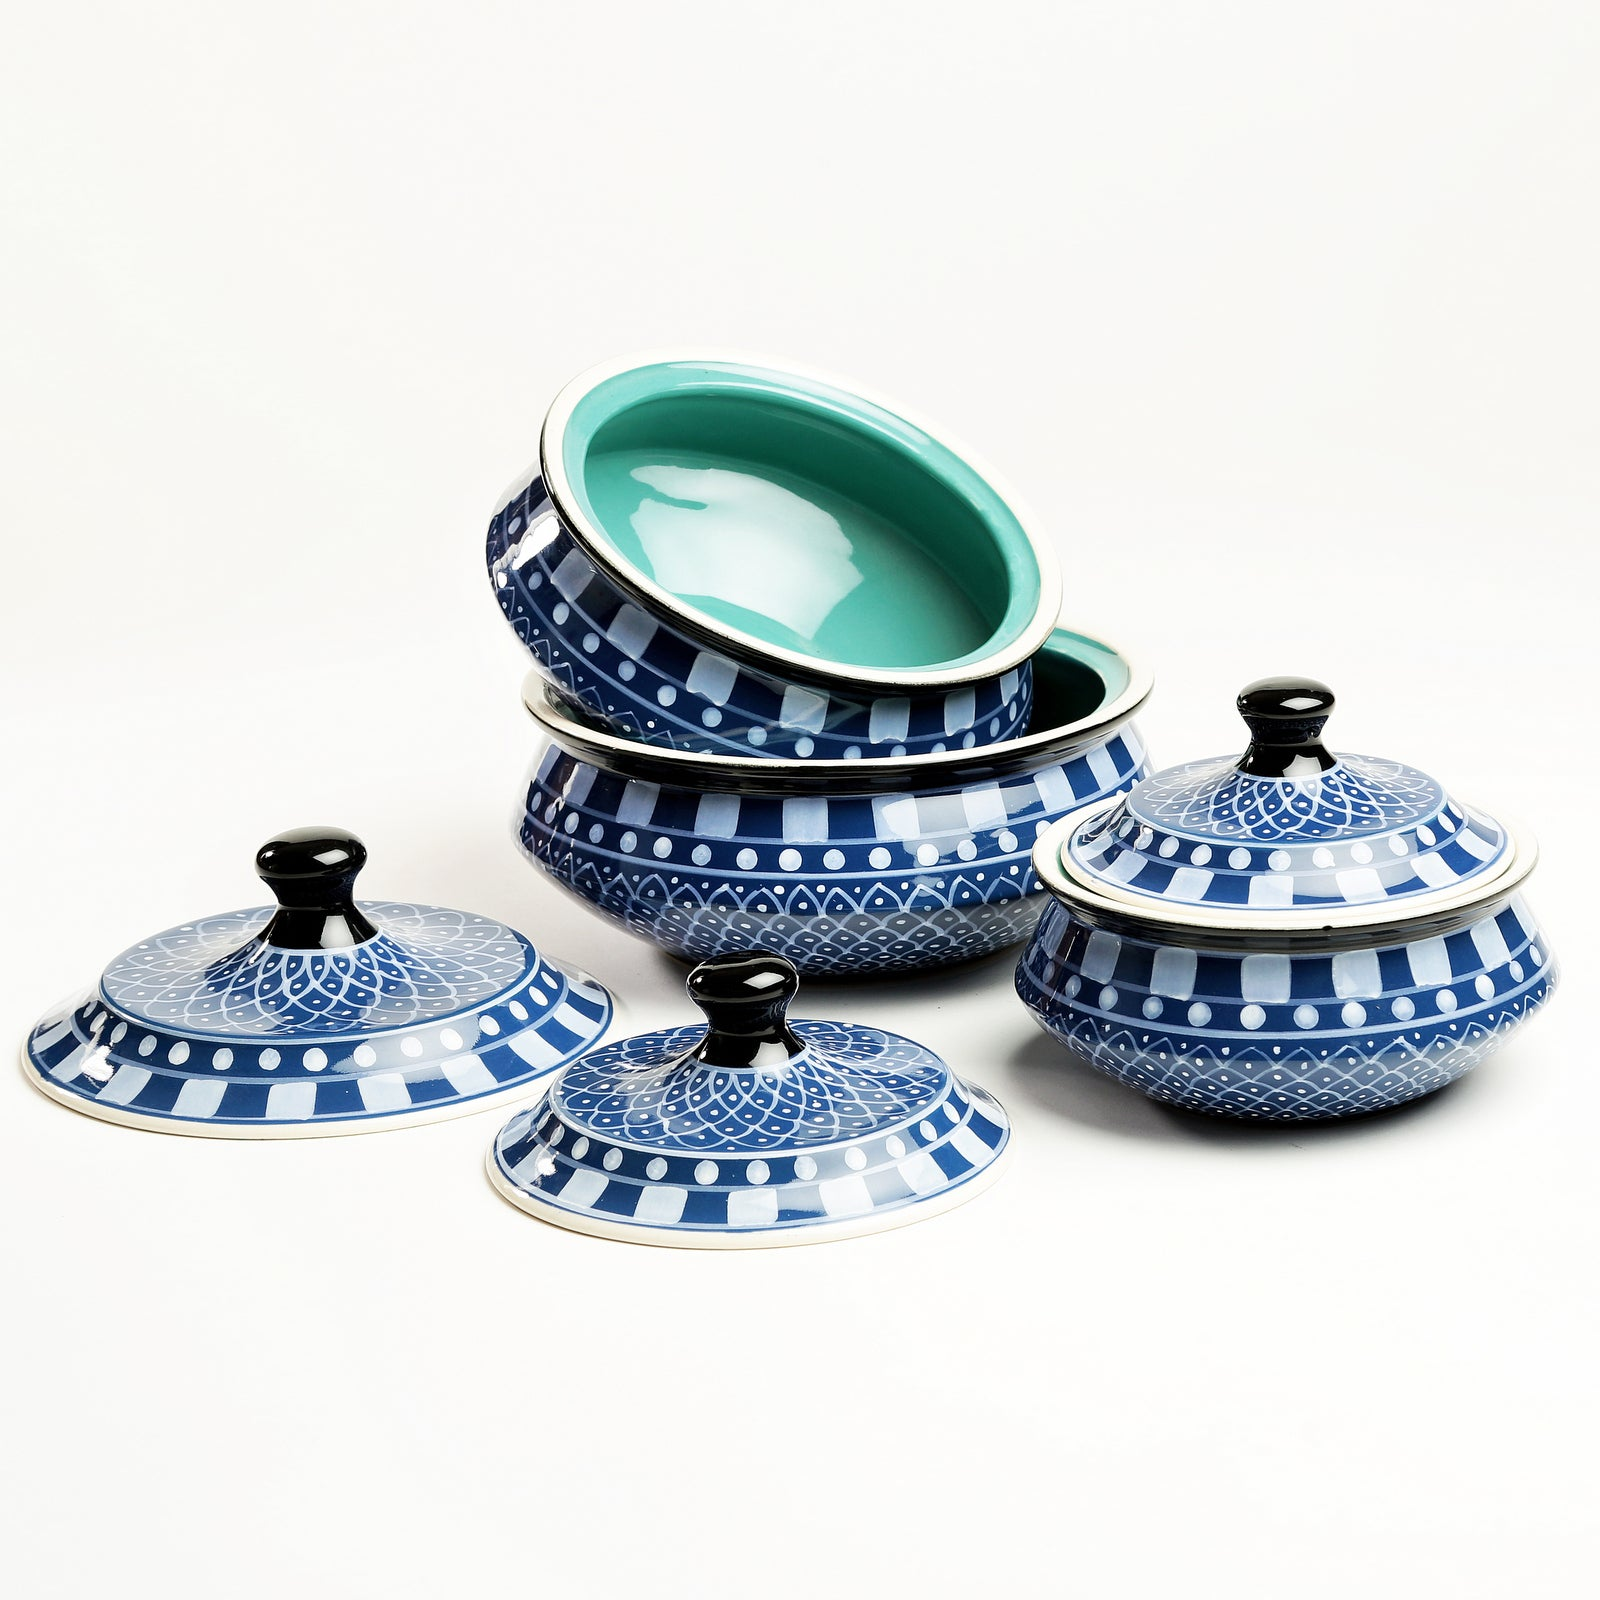 Amaia Handpainted Serving Bowl with Lid -Blue - Set of 3